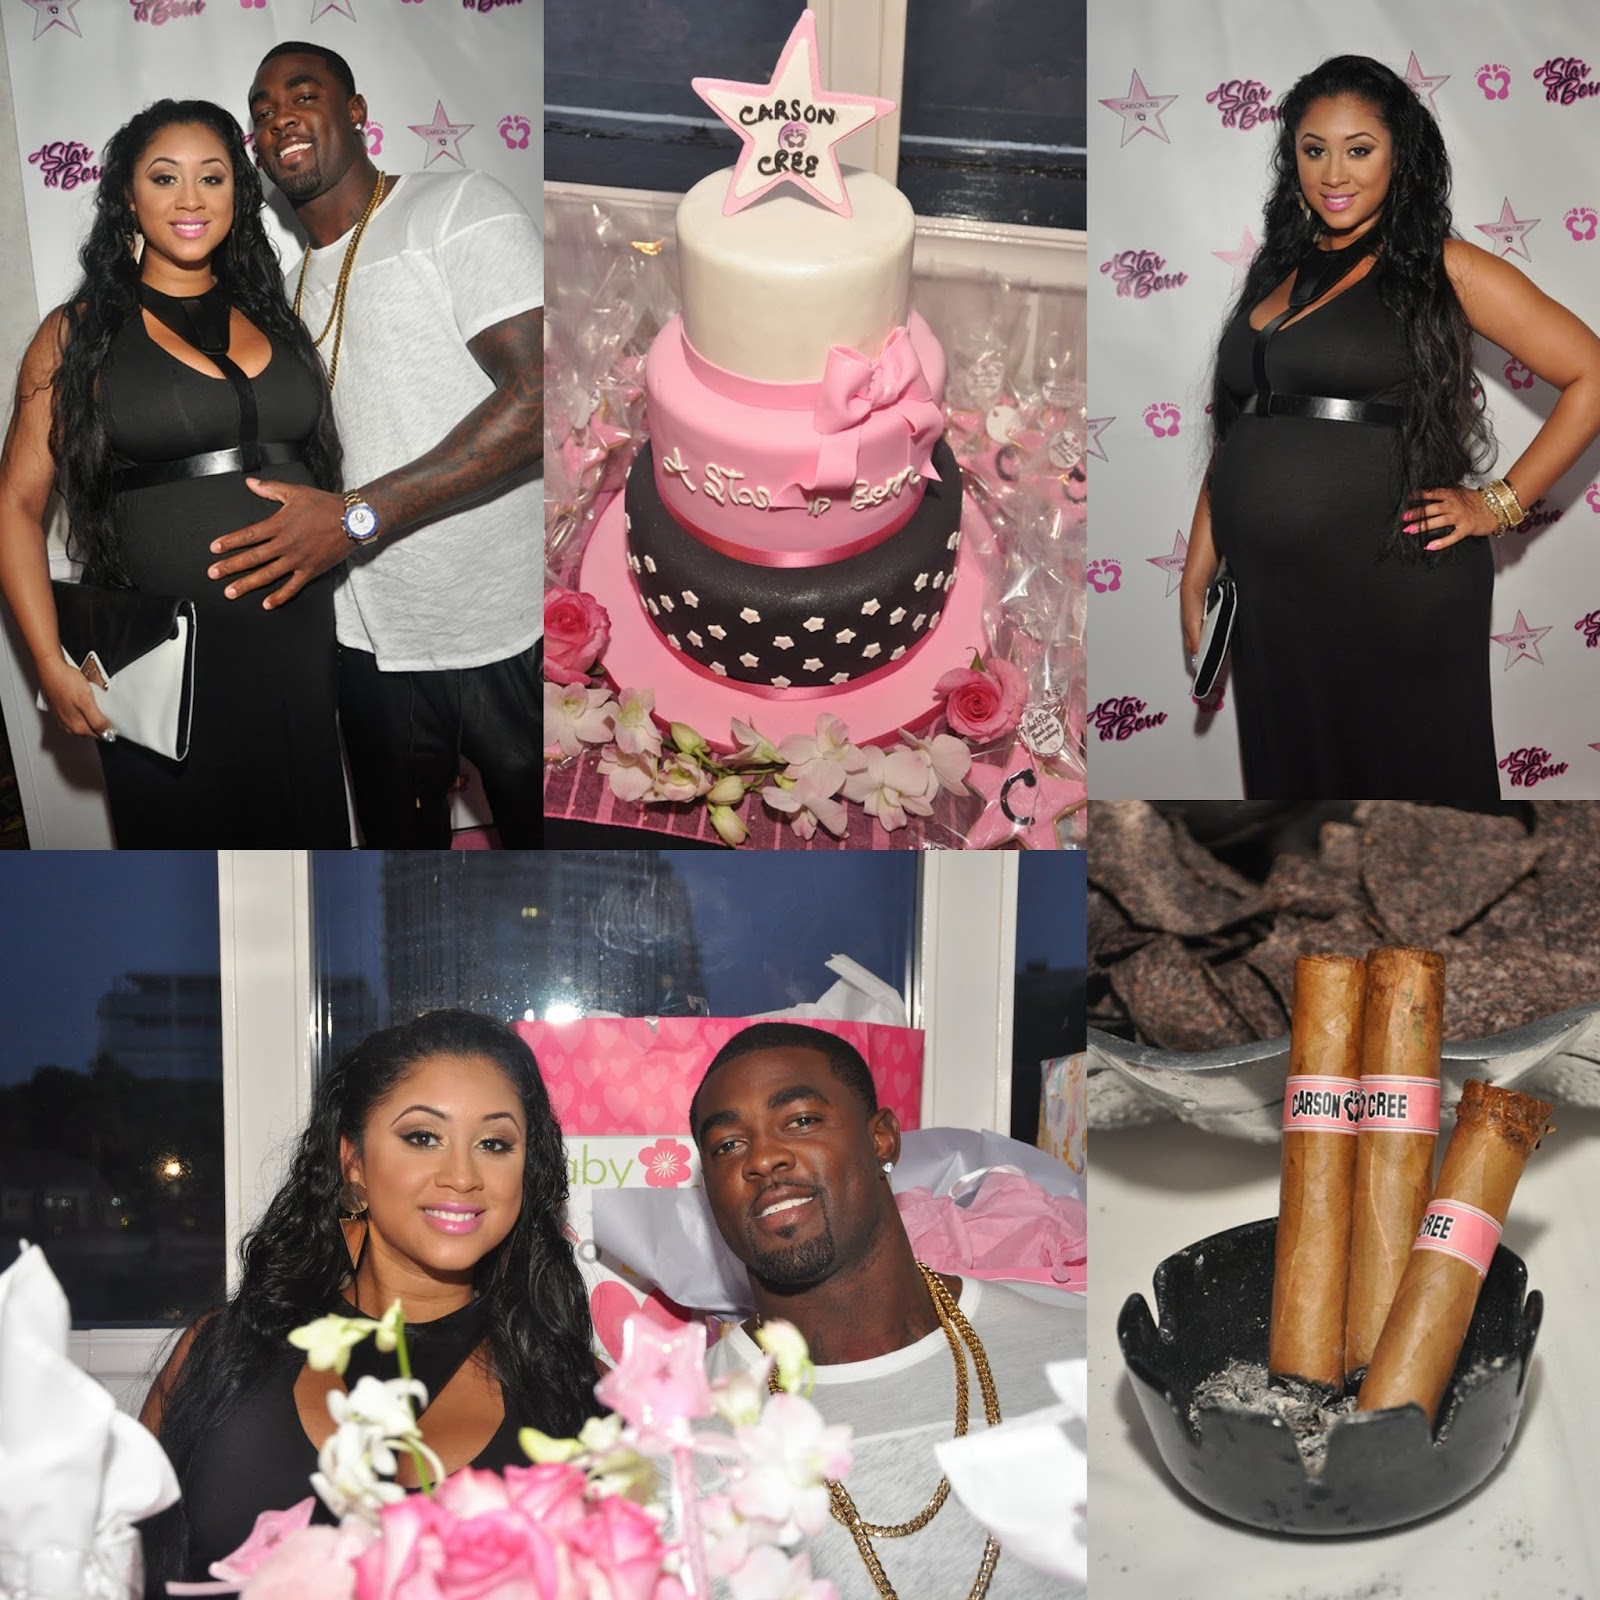 Baby Shower In Miami: SkyyLyfe: Baby Shower: A Star Is Born